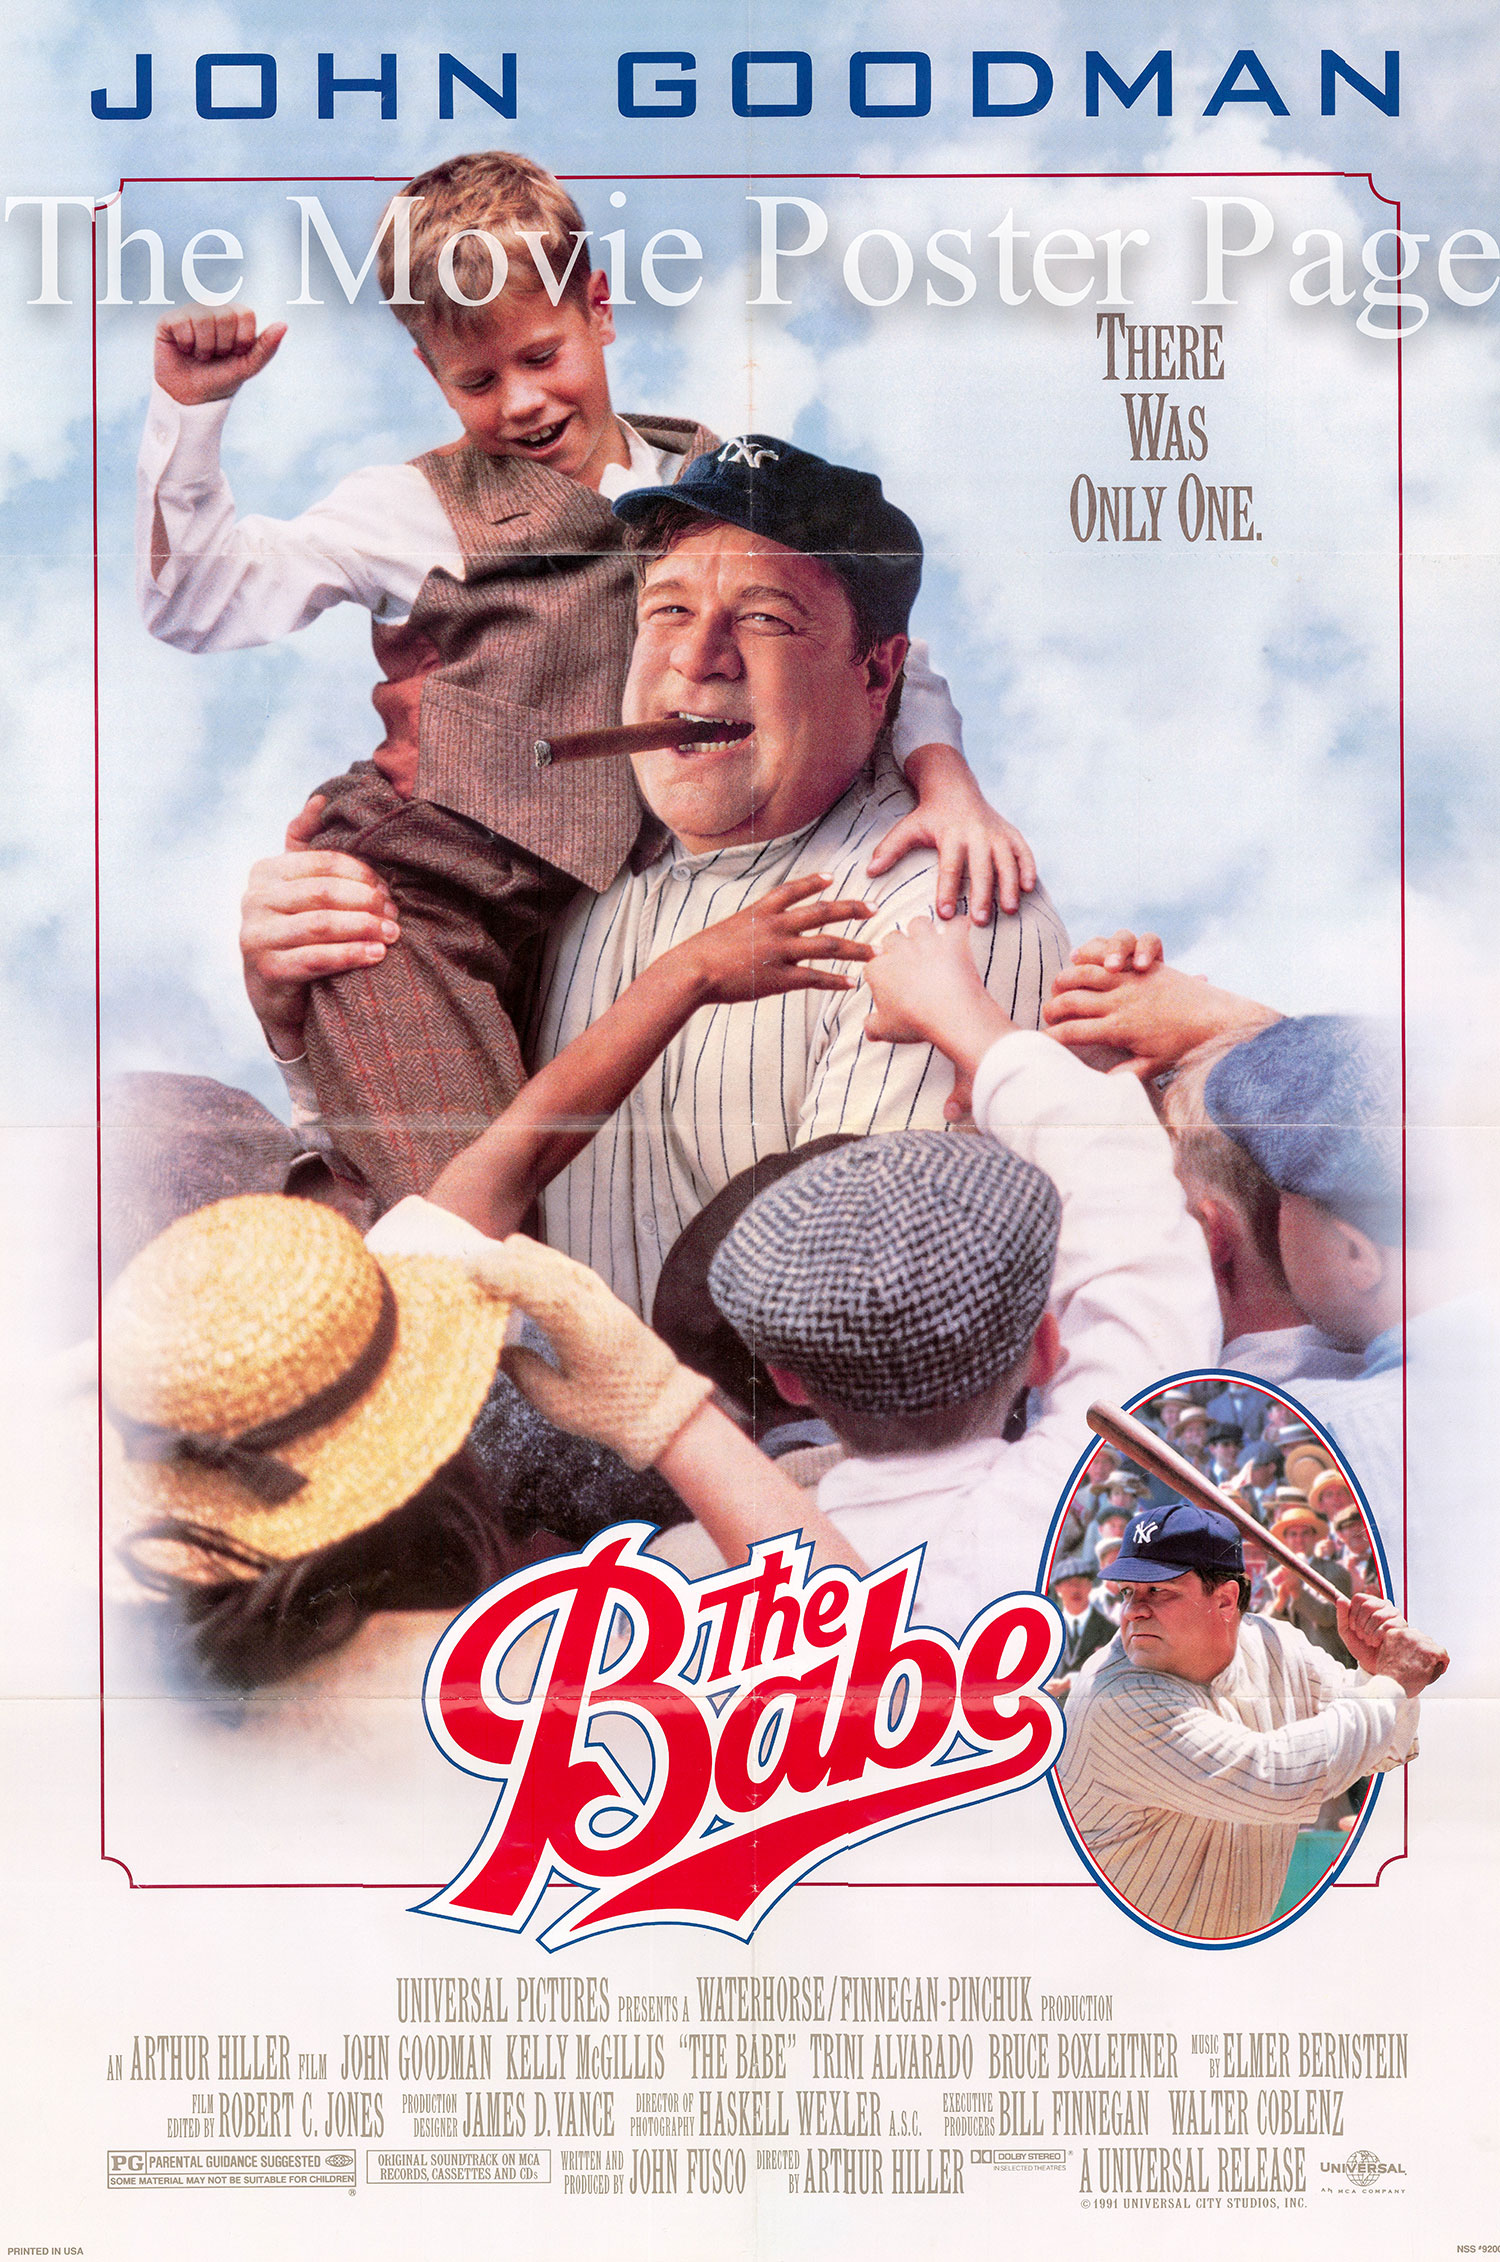 Pictured is a US one-sheet for the 1992 Arthur Hiller film The Babe starring John Goodman as Babe Ruth.